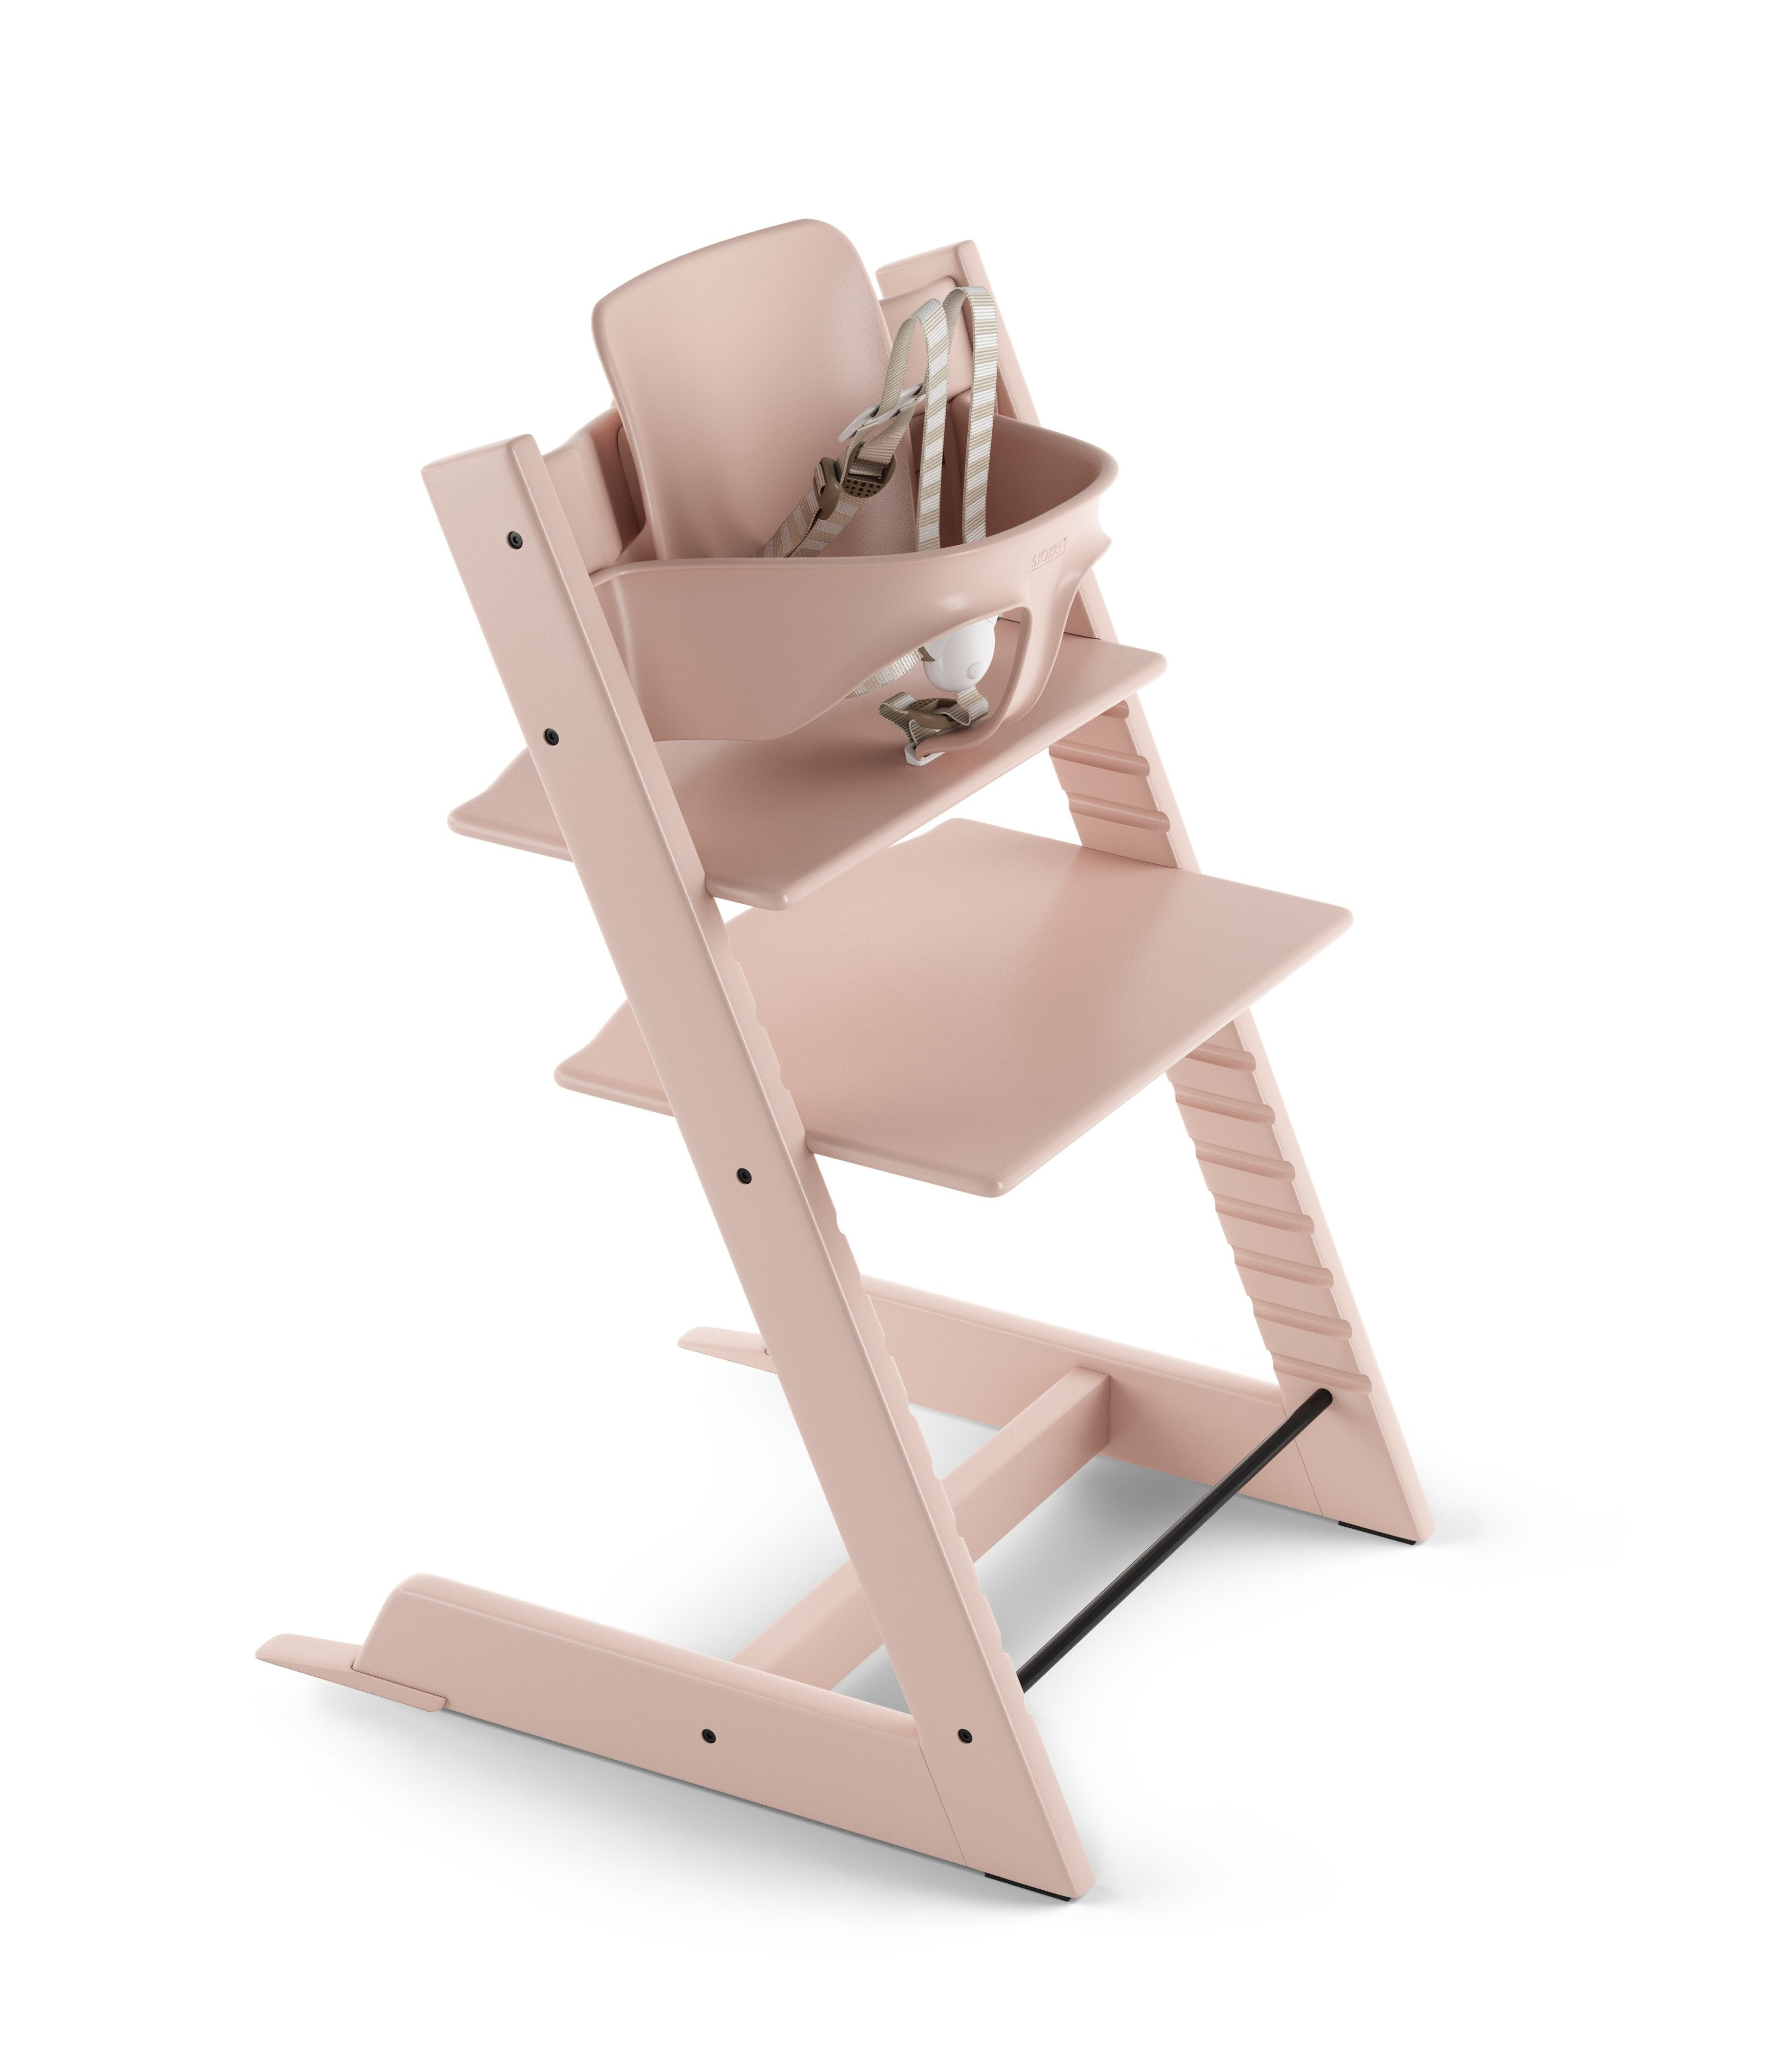 Load image into Gallery viewer, Tripp Trapp High Chair Serene Pink